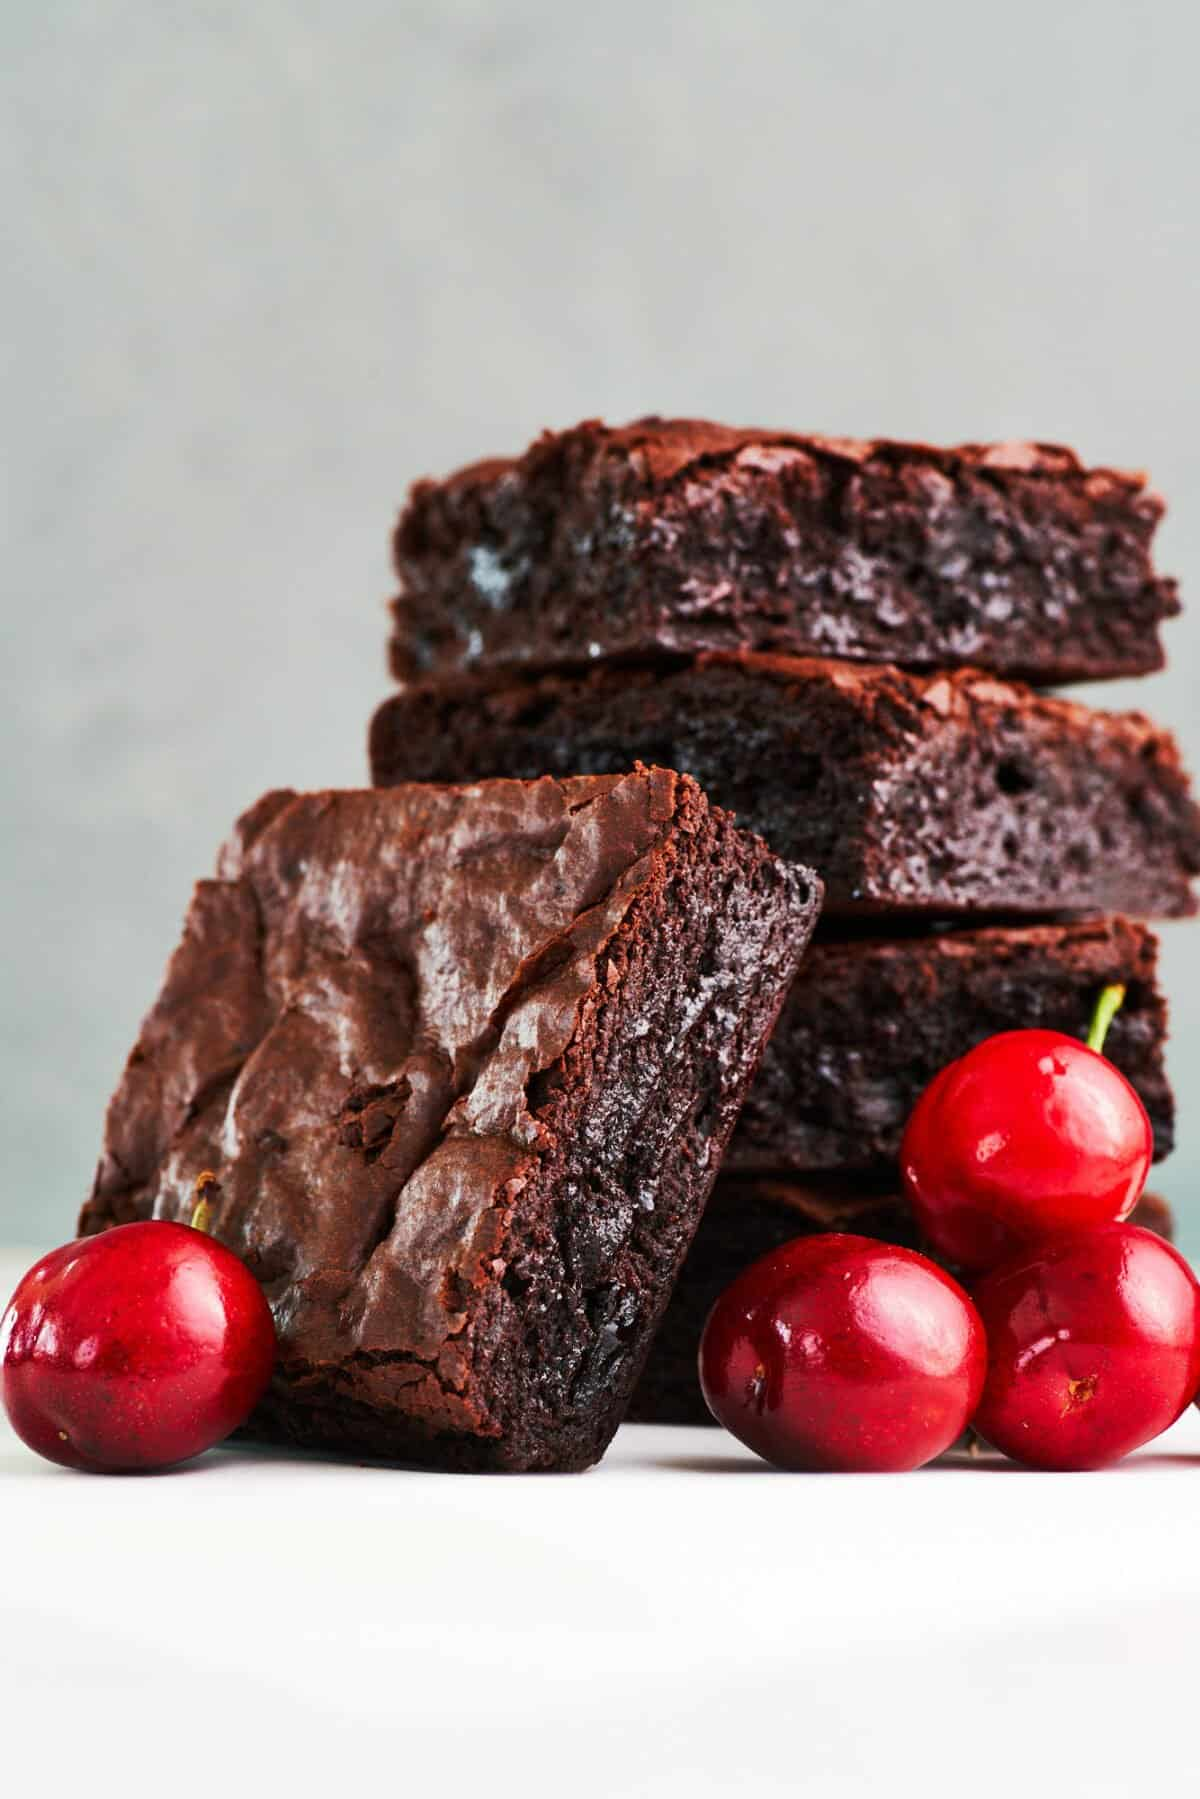 These perfect chocolate cherry brownies have a crisp shell on top and a decadent fudgy center, and they take less than 10 minutes to get in the oven.